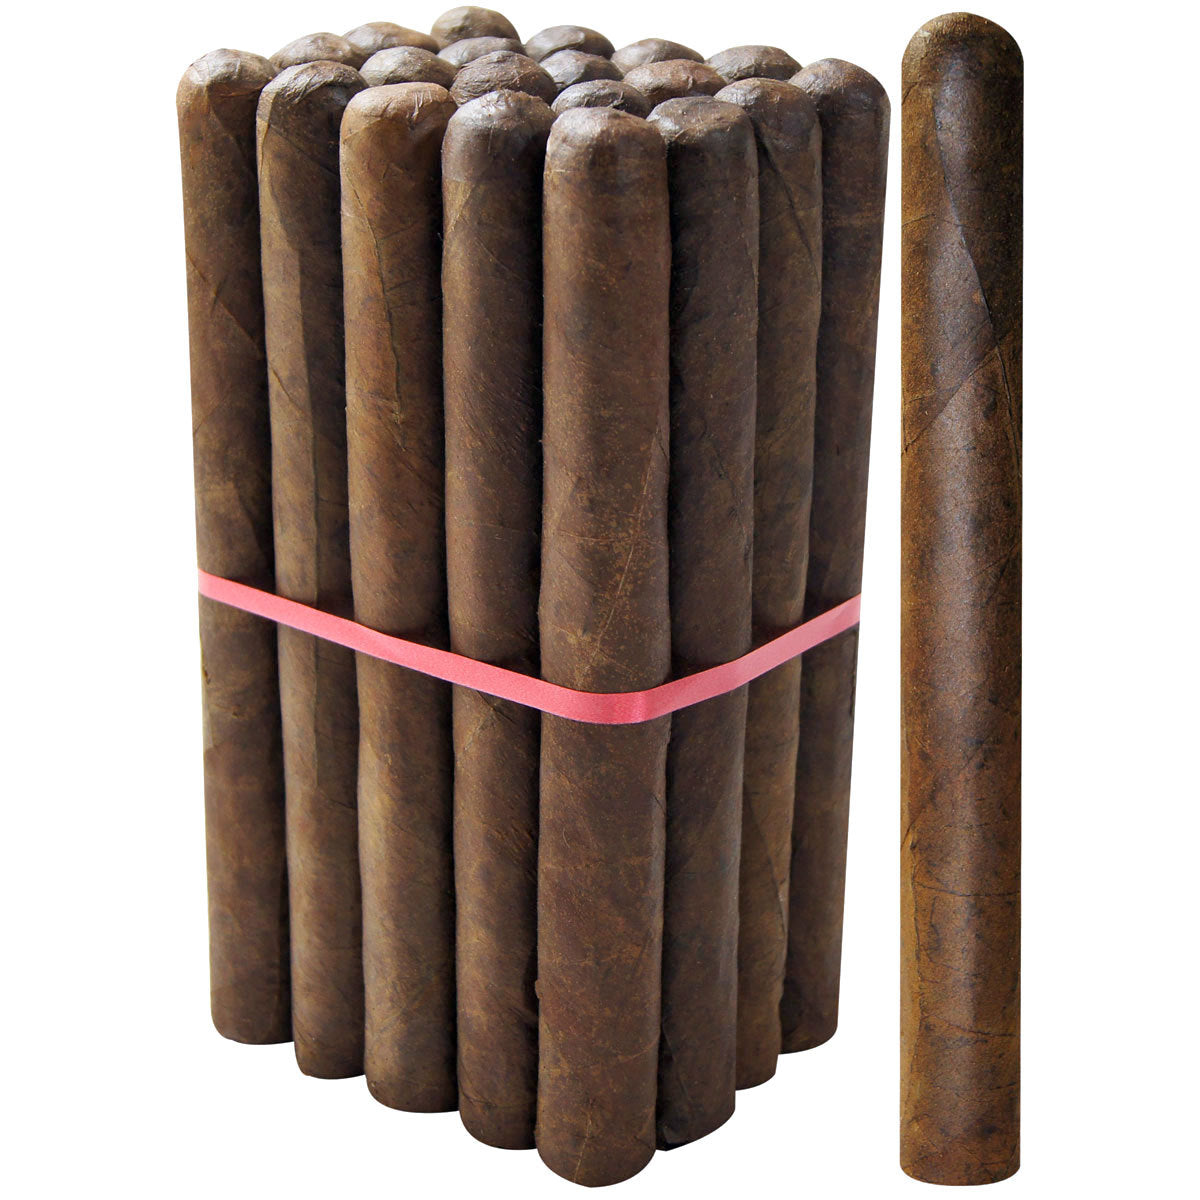 La Caya Toro Habano Cigar Mild to Medium-Bodied 6 X 50 Bundle of 25 - Cigar boulevard